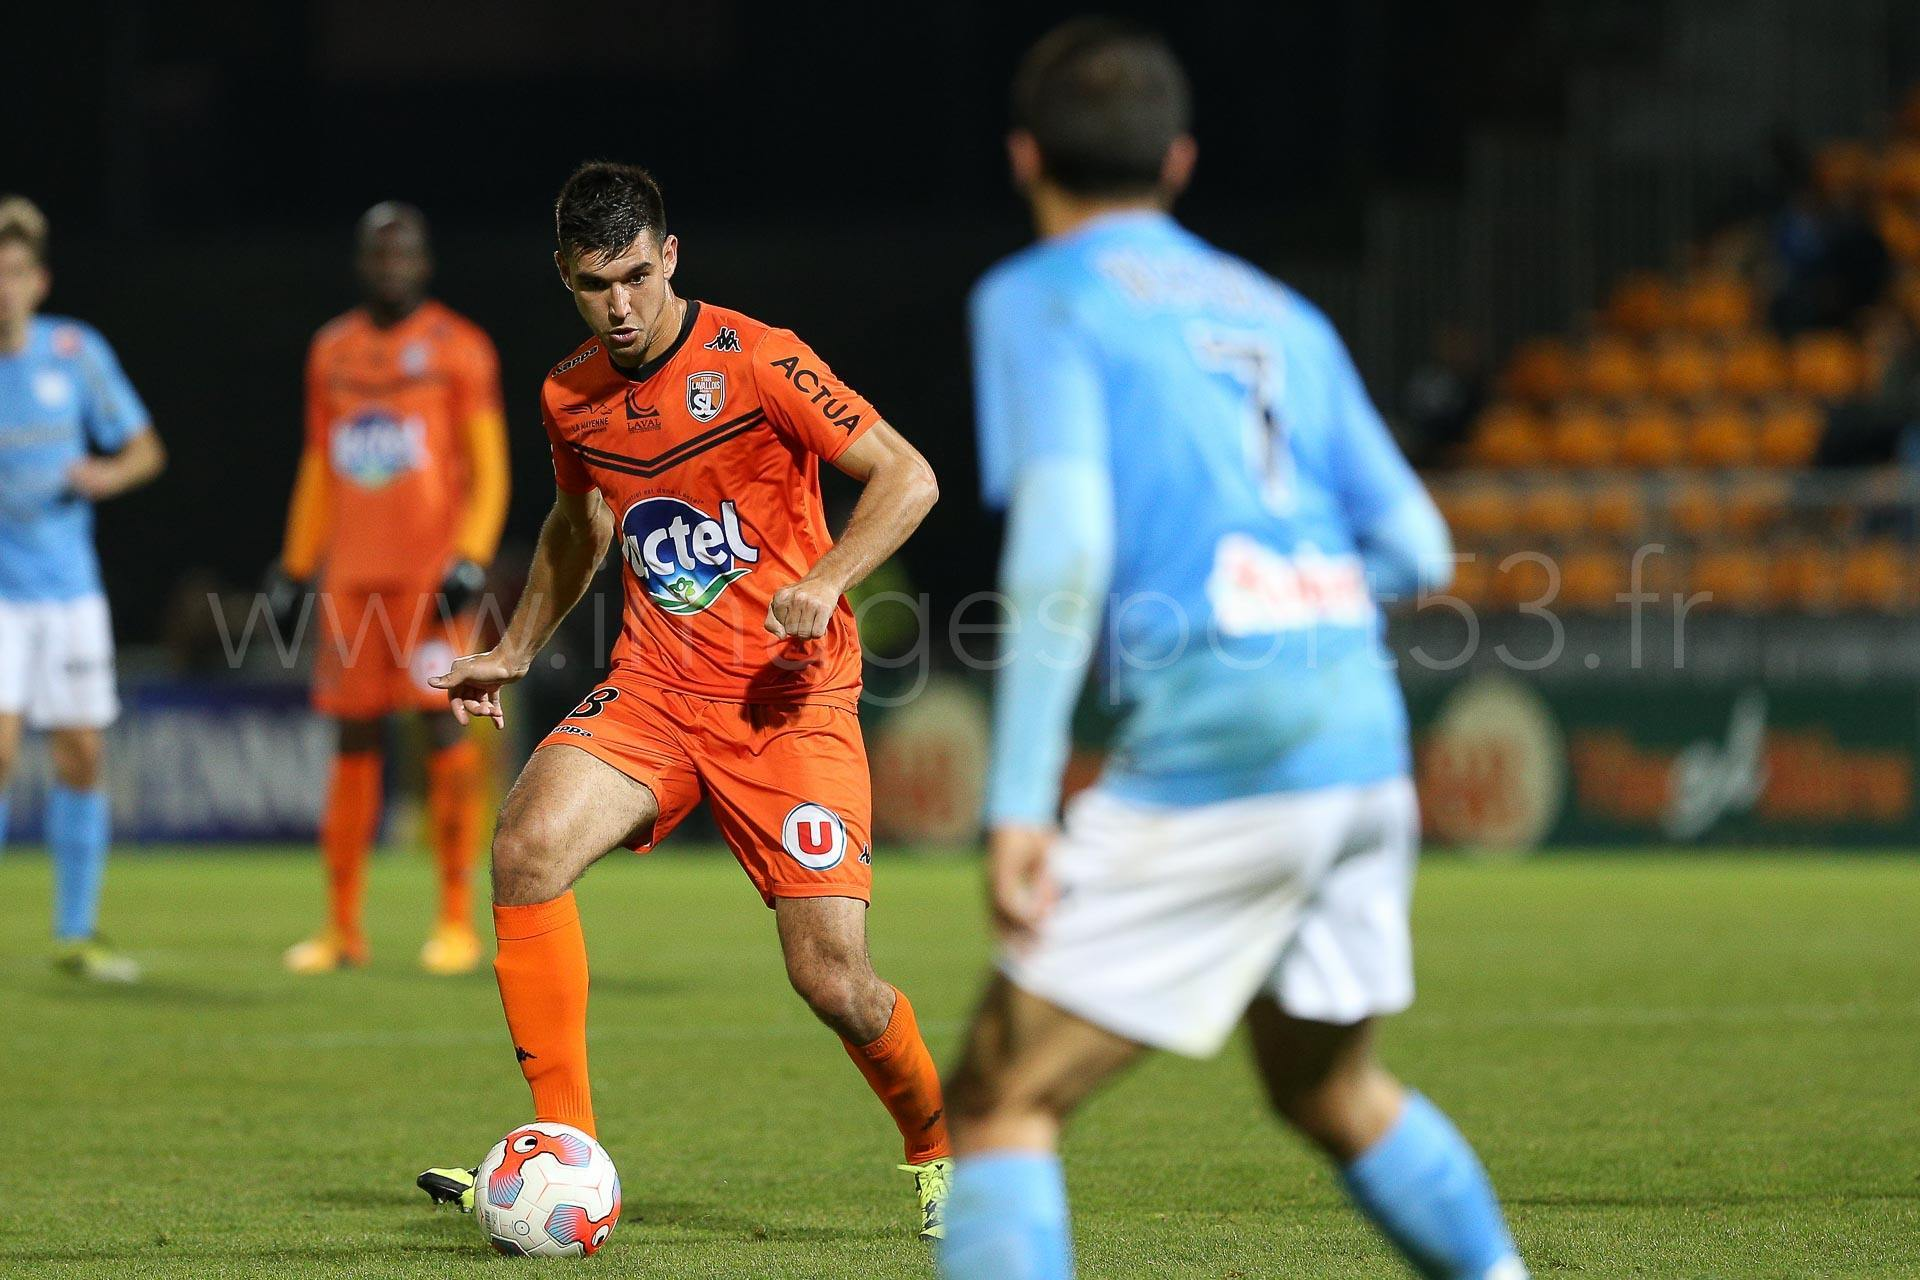 NG-Ligue2-1516-J12-Laval-Tours_30